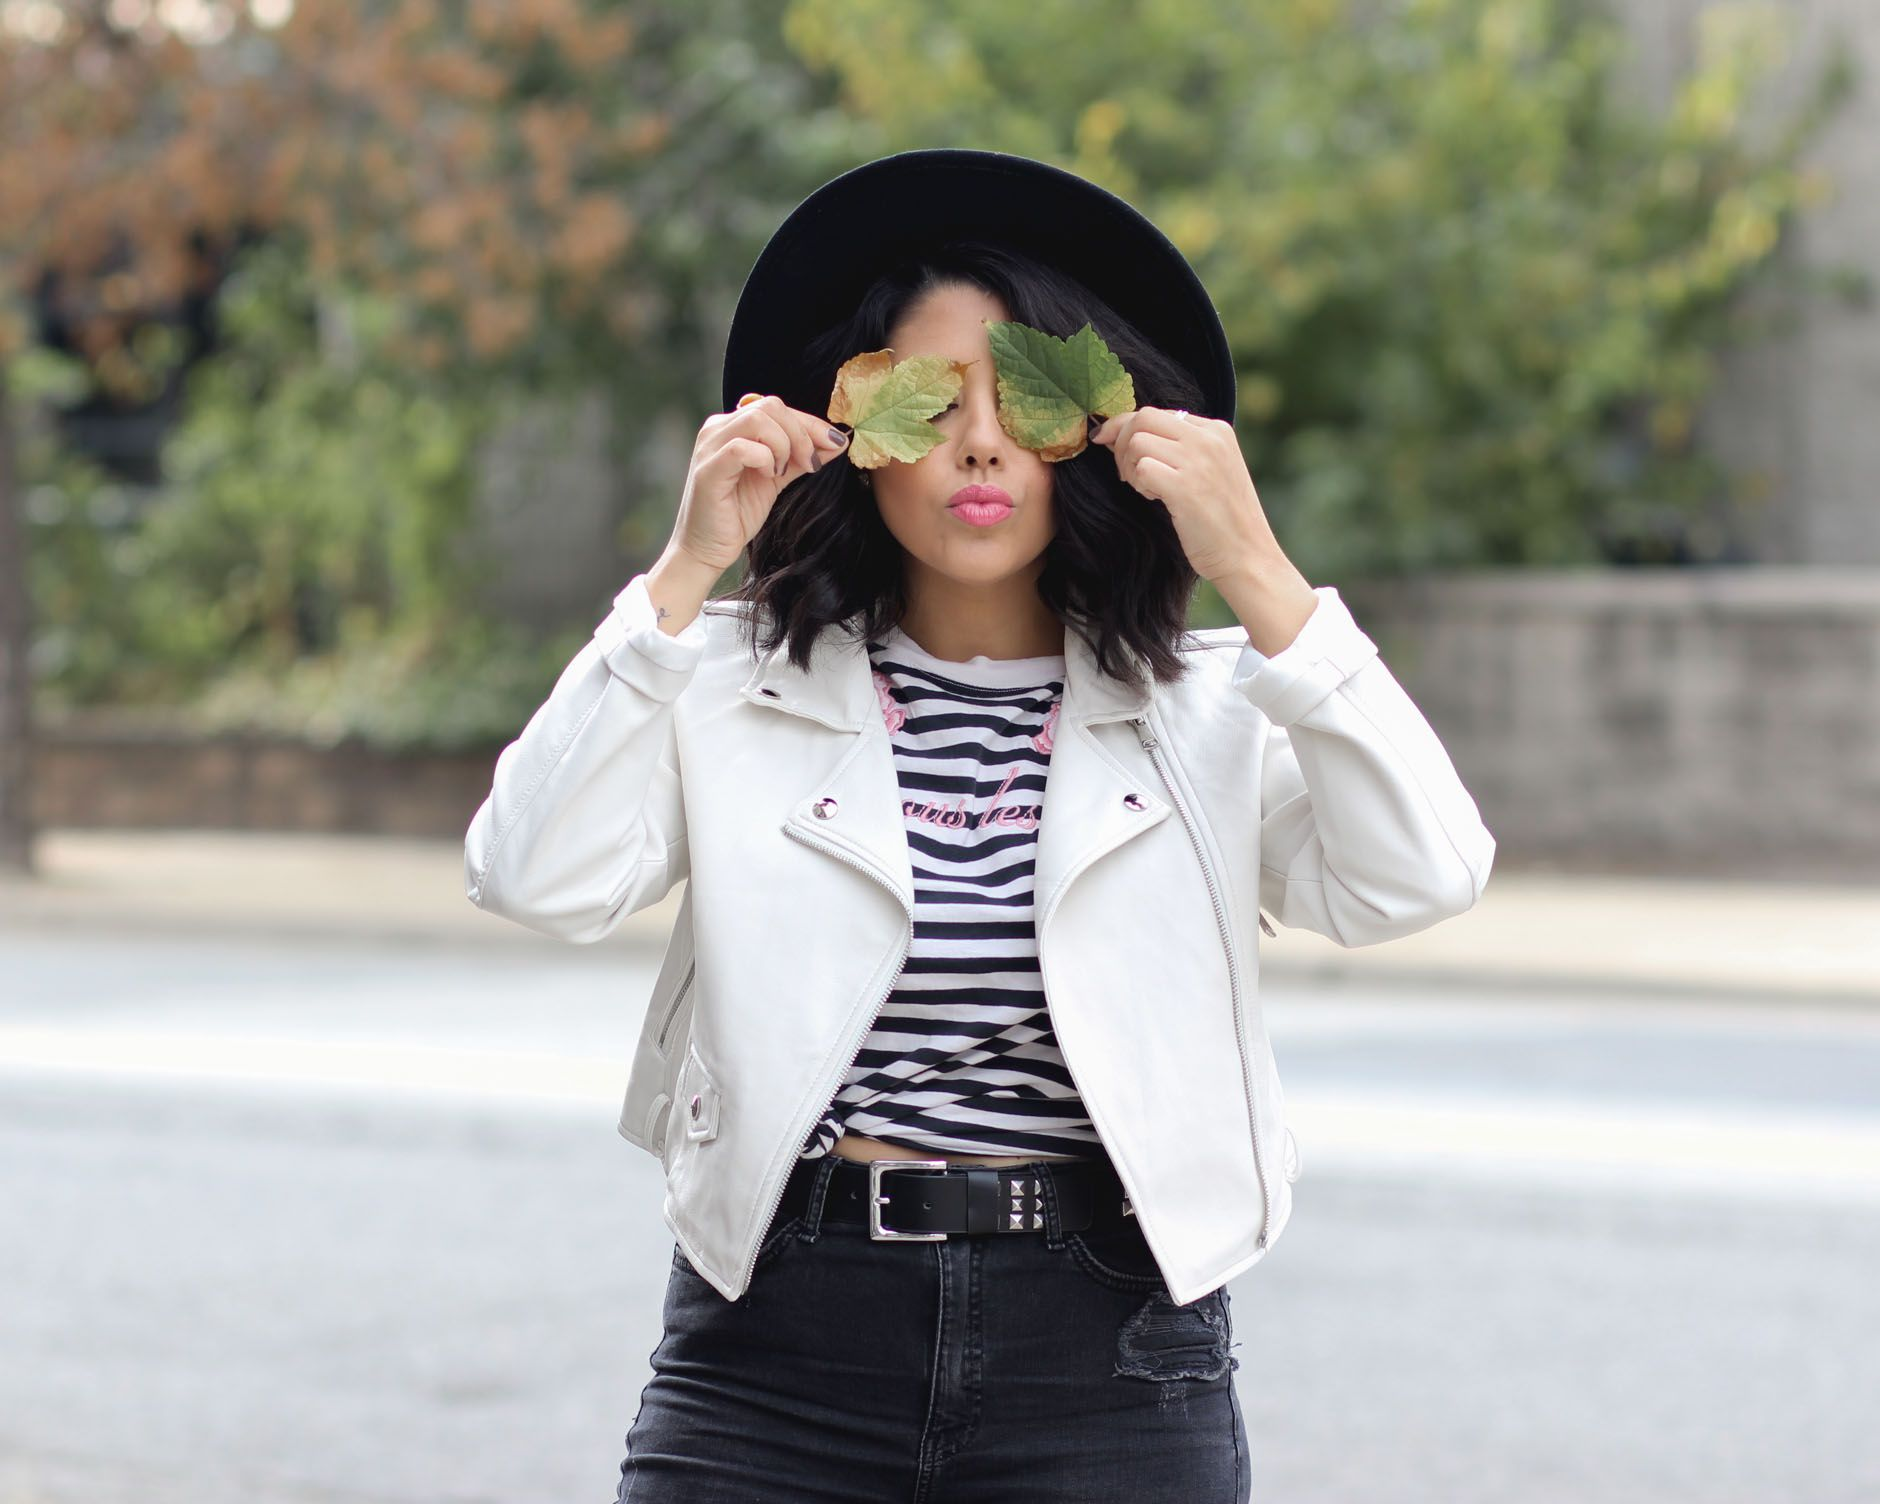 23f6073a332 lifestyle blogger naty michele wearing a white faux leather jacket and  holding leaves